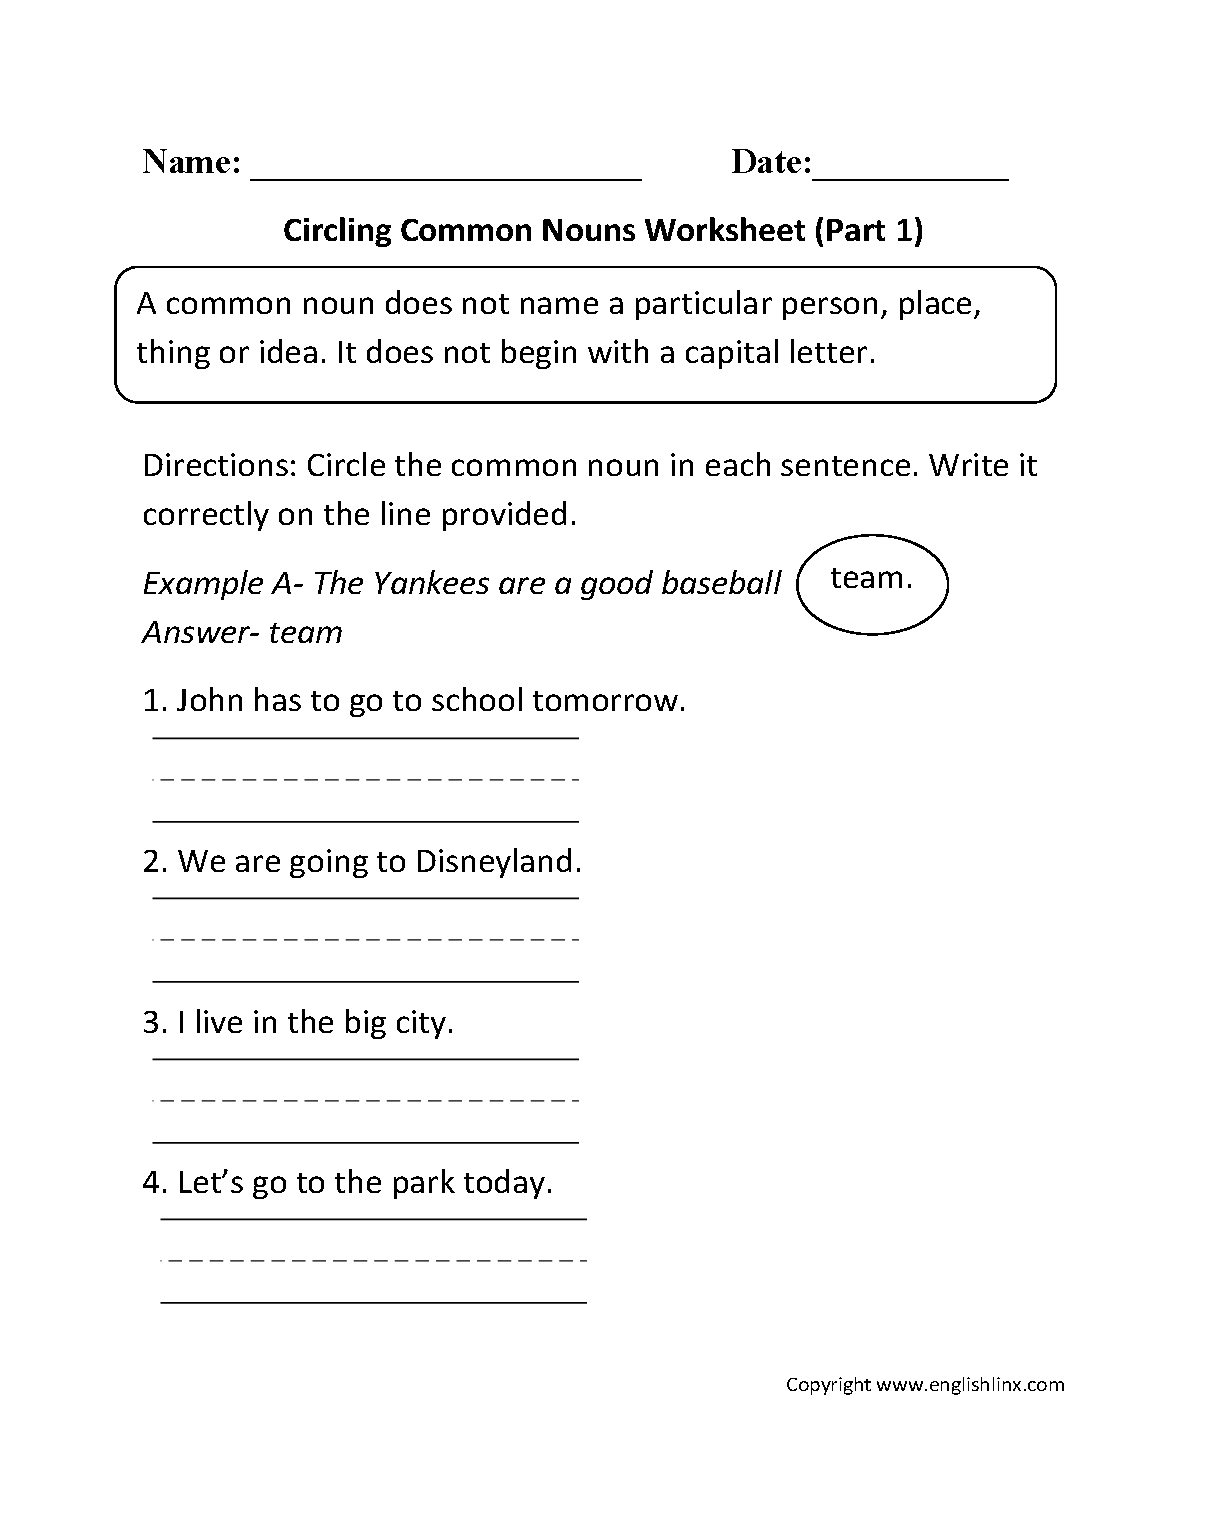 worksheet Noun Worksheets 4th Grade nouns worksheets proper and common worksheet part 1